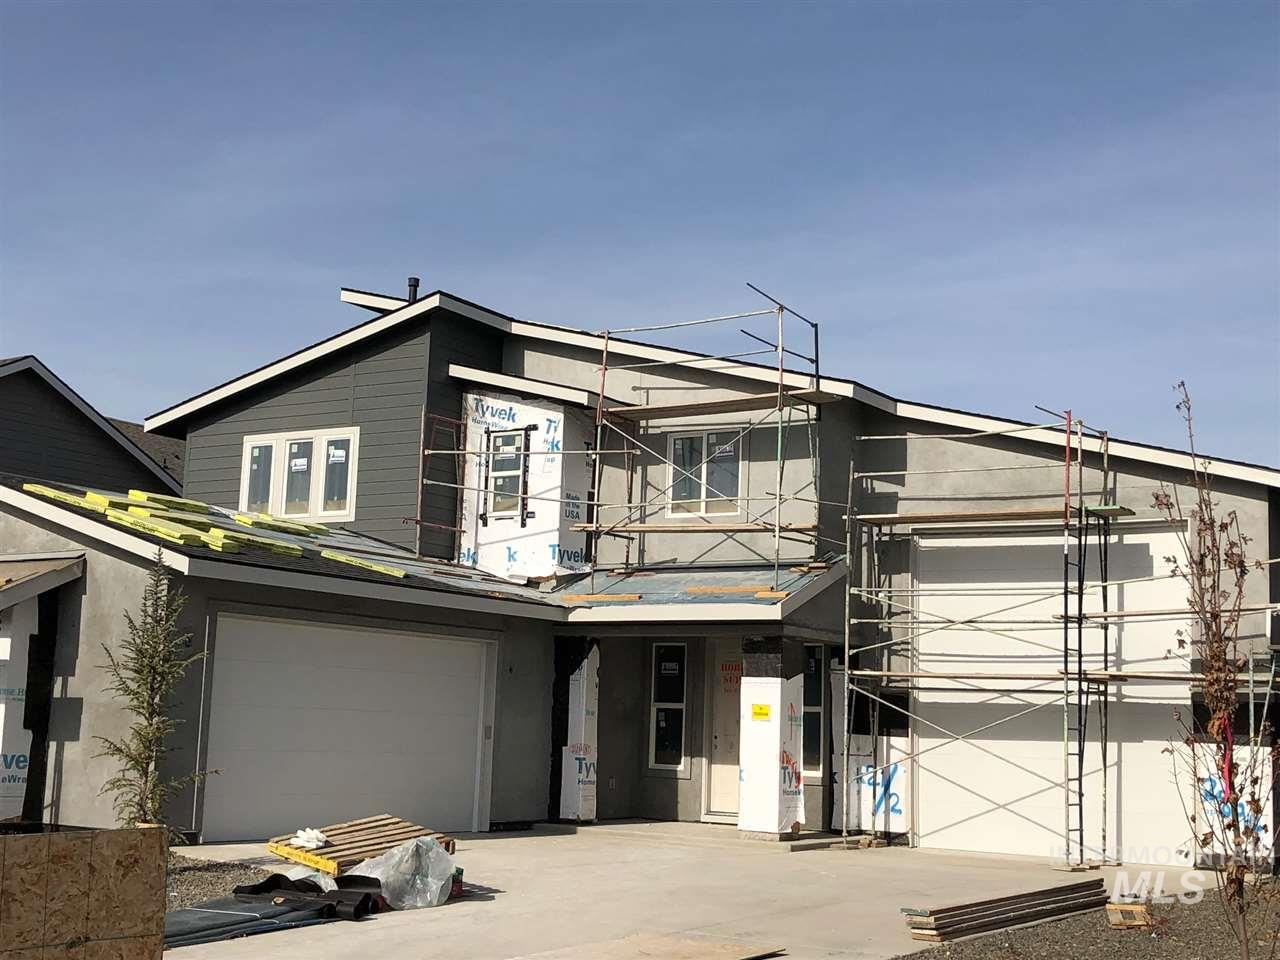 The Lemhi is a perfect example of an efficient design. Enter the home to a beautiful entry and flex space. Upstairs features 3 bedrooms and a loft space. The garage features a 2 car bay separate from the 47' RV Bay with a 14' door. The open kitchen, great and dining room flow seamlessly together. The master suite features His & Her Closets and a tiled walk-in shower. The Sky Mesa Community offers amenities for an active lifestyle, infinity edge community pool, close to schools, shopping, and the freeway.